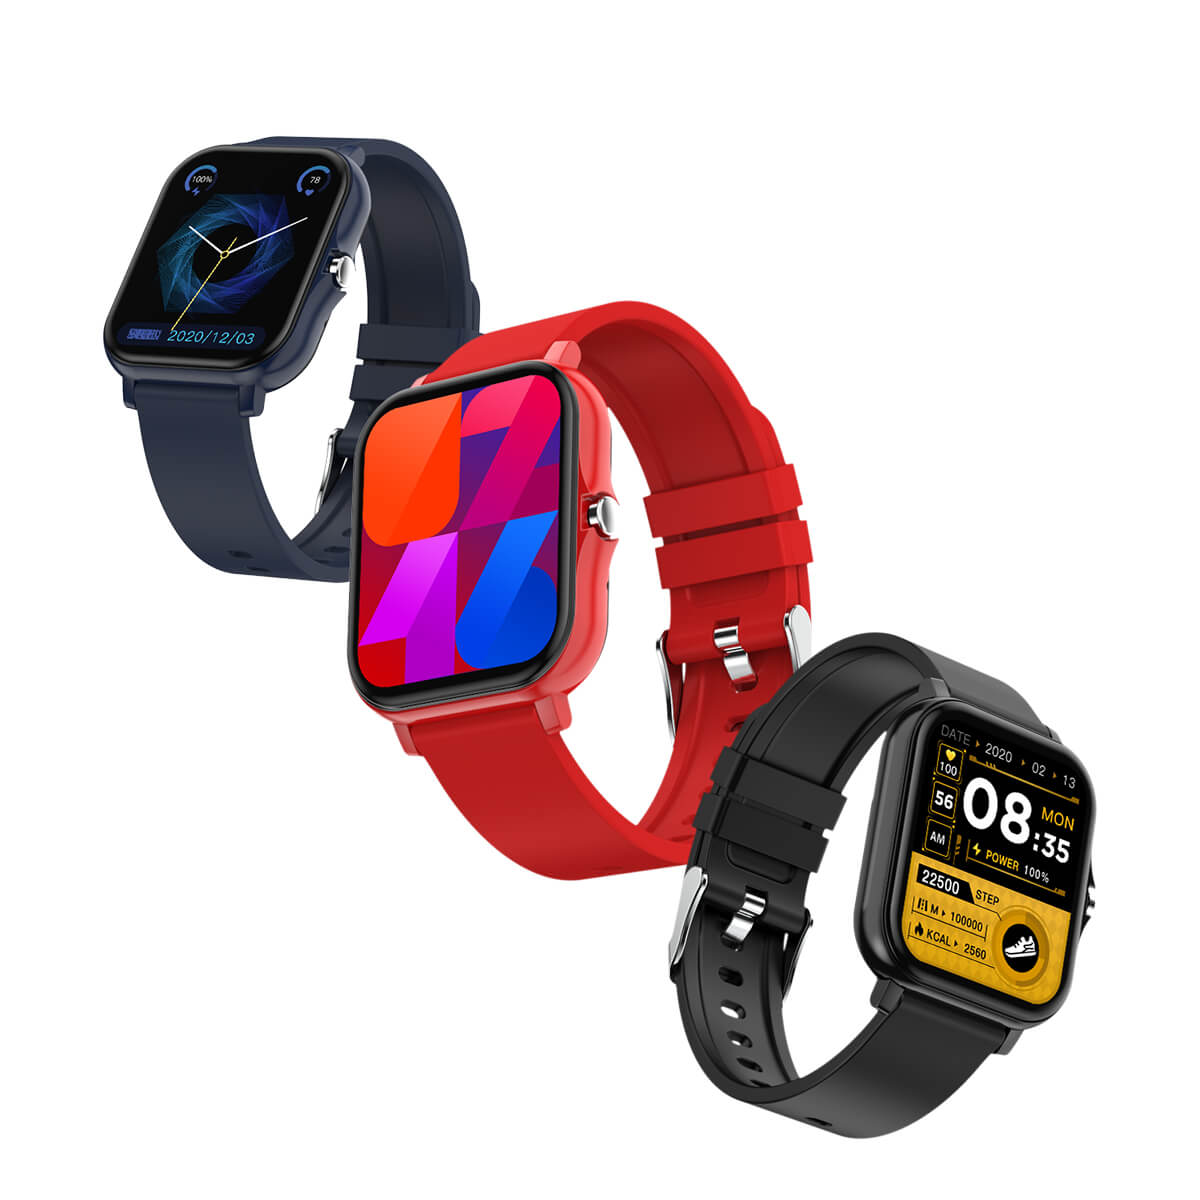 Lightweight Sports Smart Watch/Gift Watch/Heart Rate and Blood Pressure ECG Monitoring Watch/Android